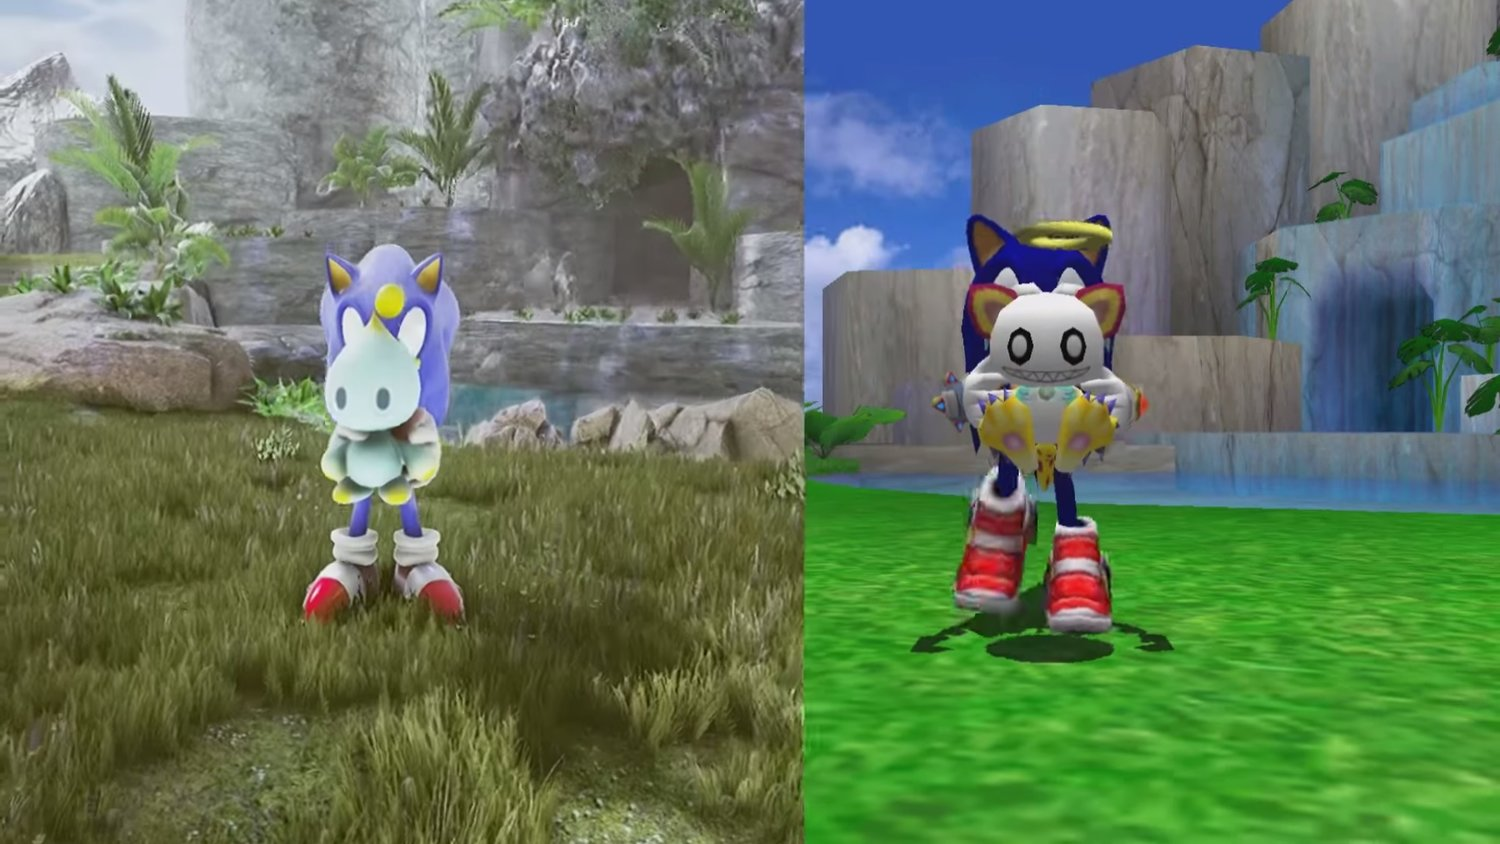 Check Out The Chao Guardian From Sonic Adventure 2 Remade In Unreal Engine 4 Gametyrant